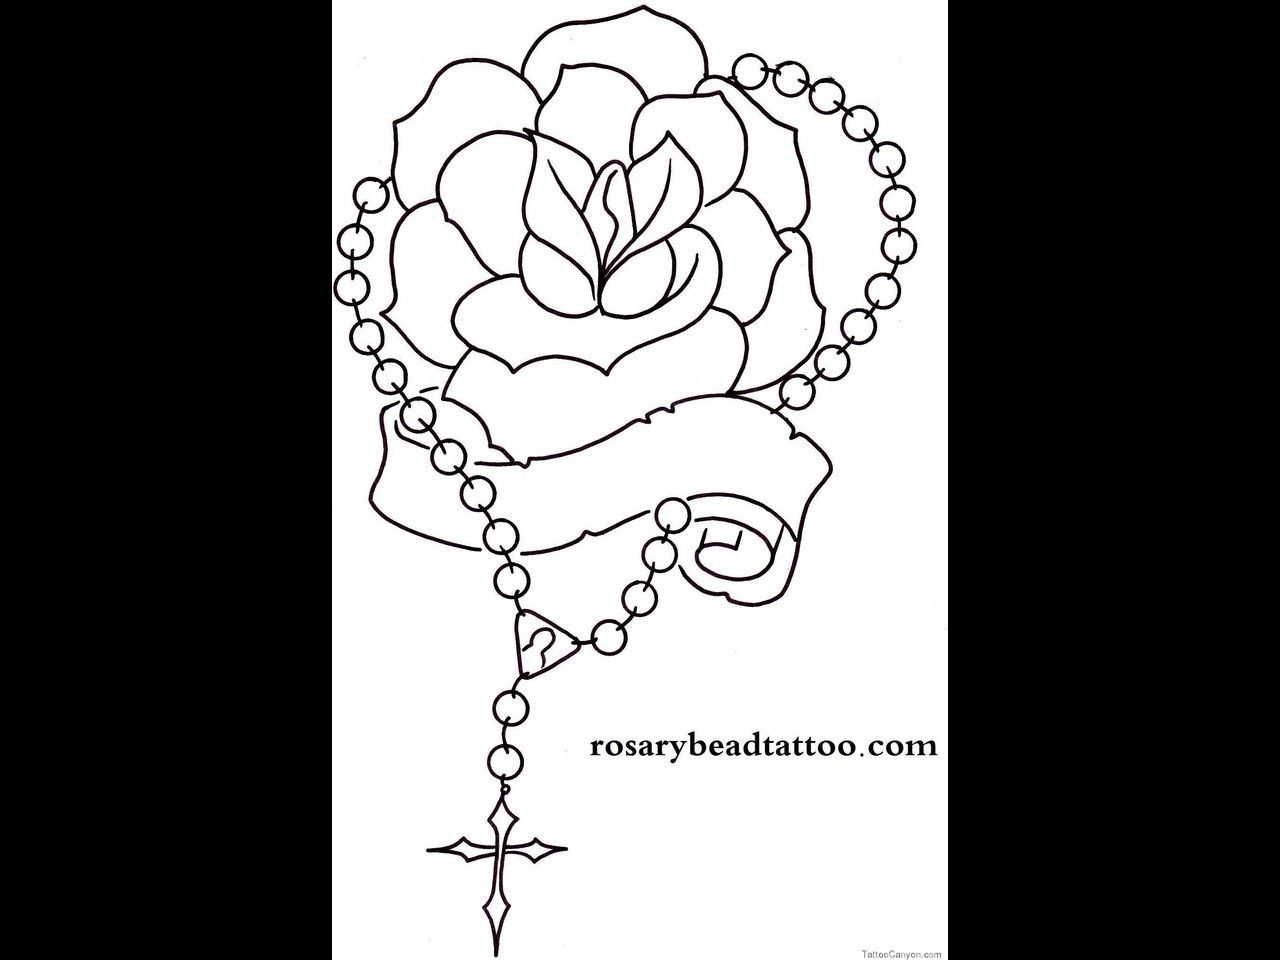 Praying Hands With Rosary And Roses